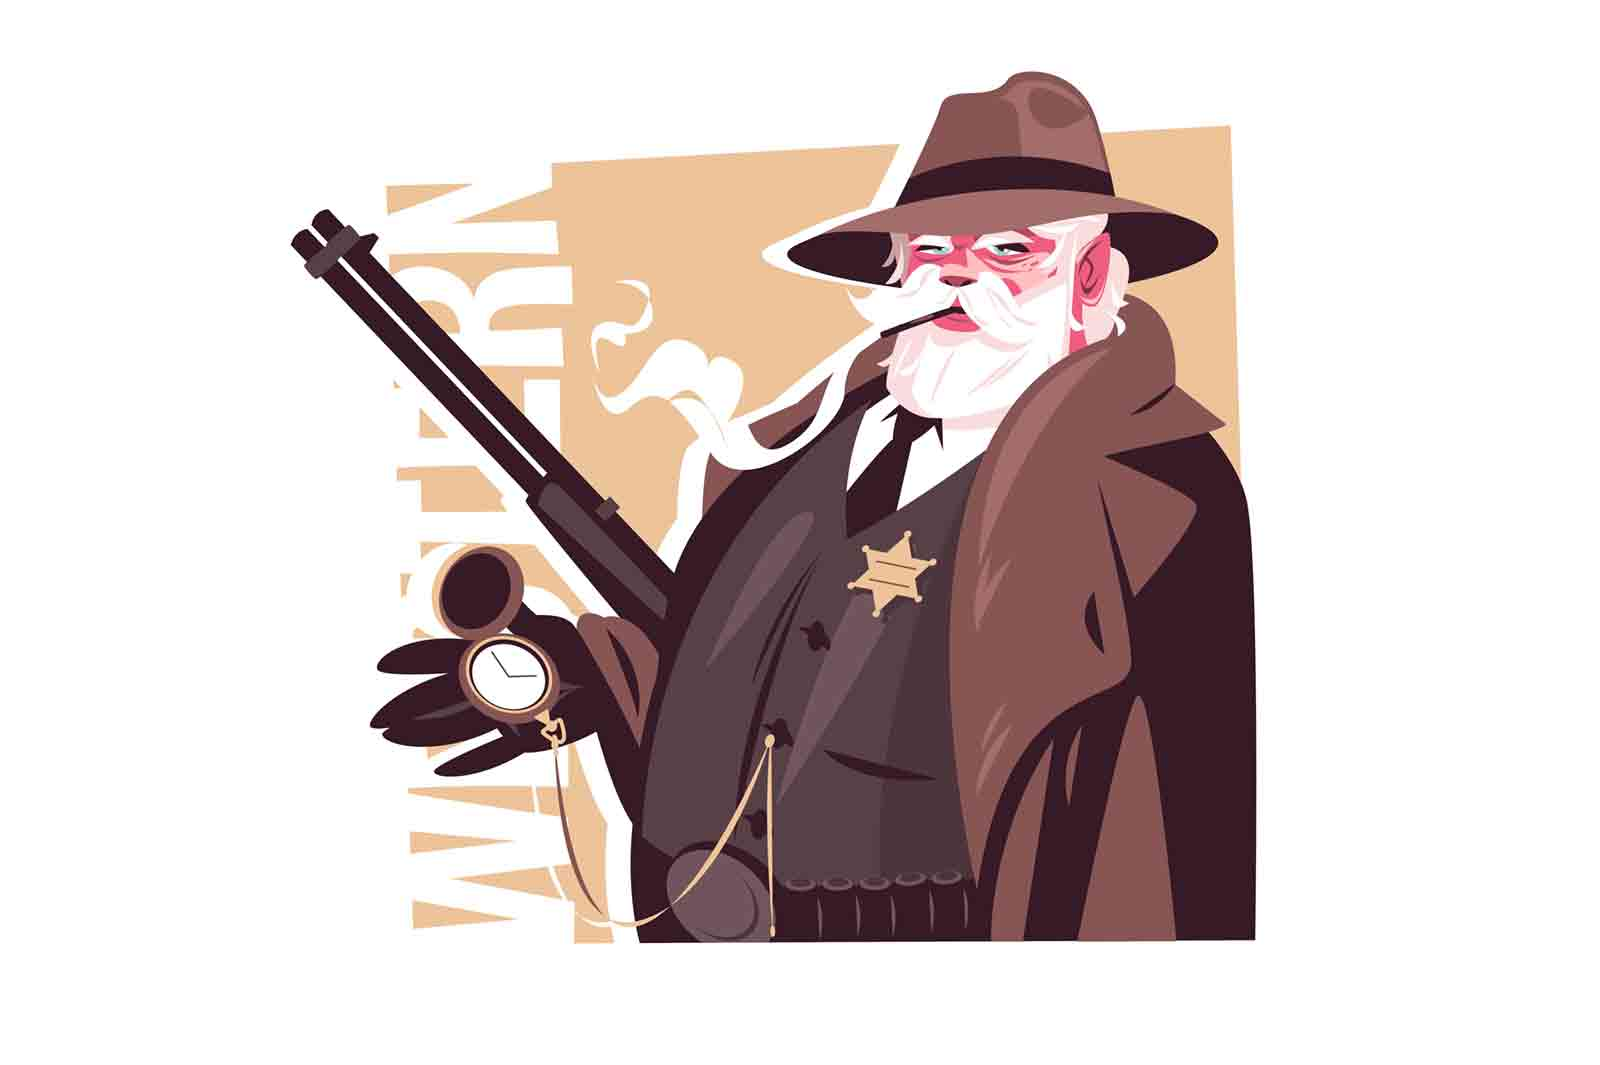 Old man sheriff character vector illustration. Male with cigarette, watch and gun flat style. Cowboy man with star on chest. Wild west and western culture concept. Isolated on white background